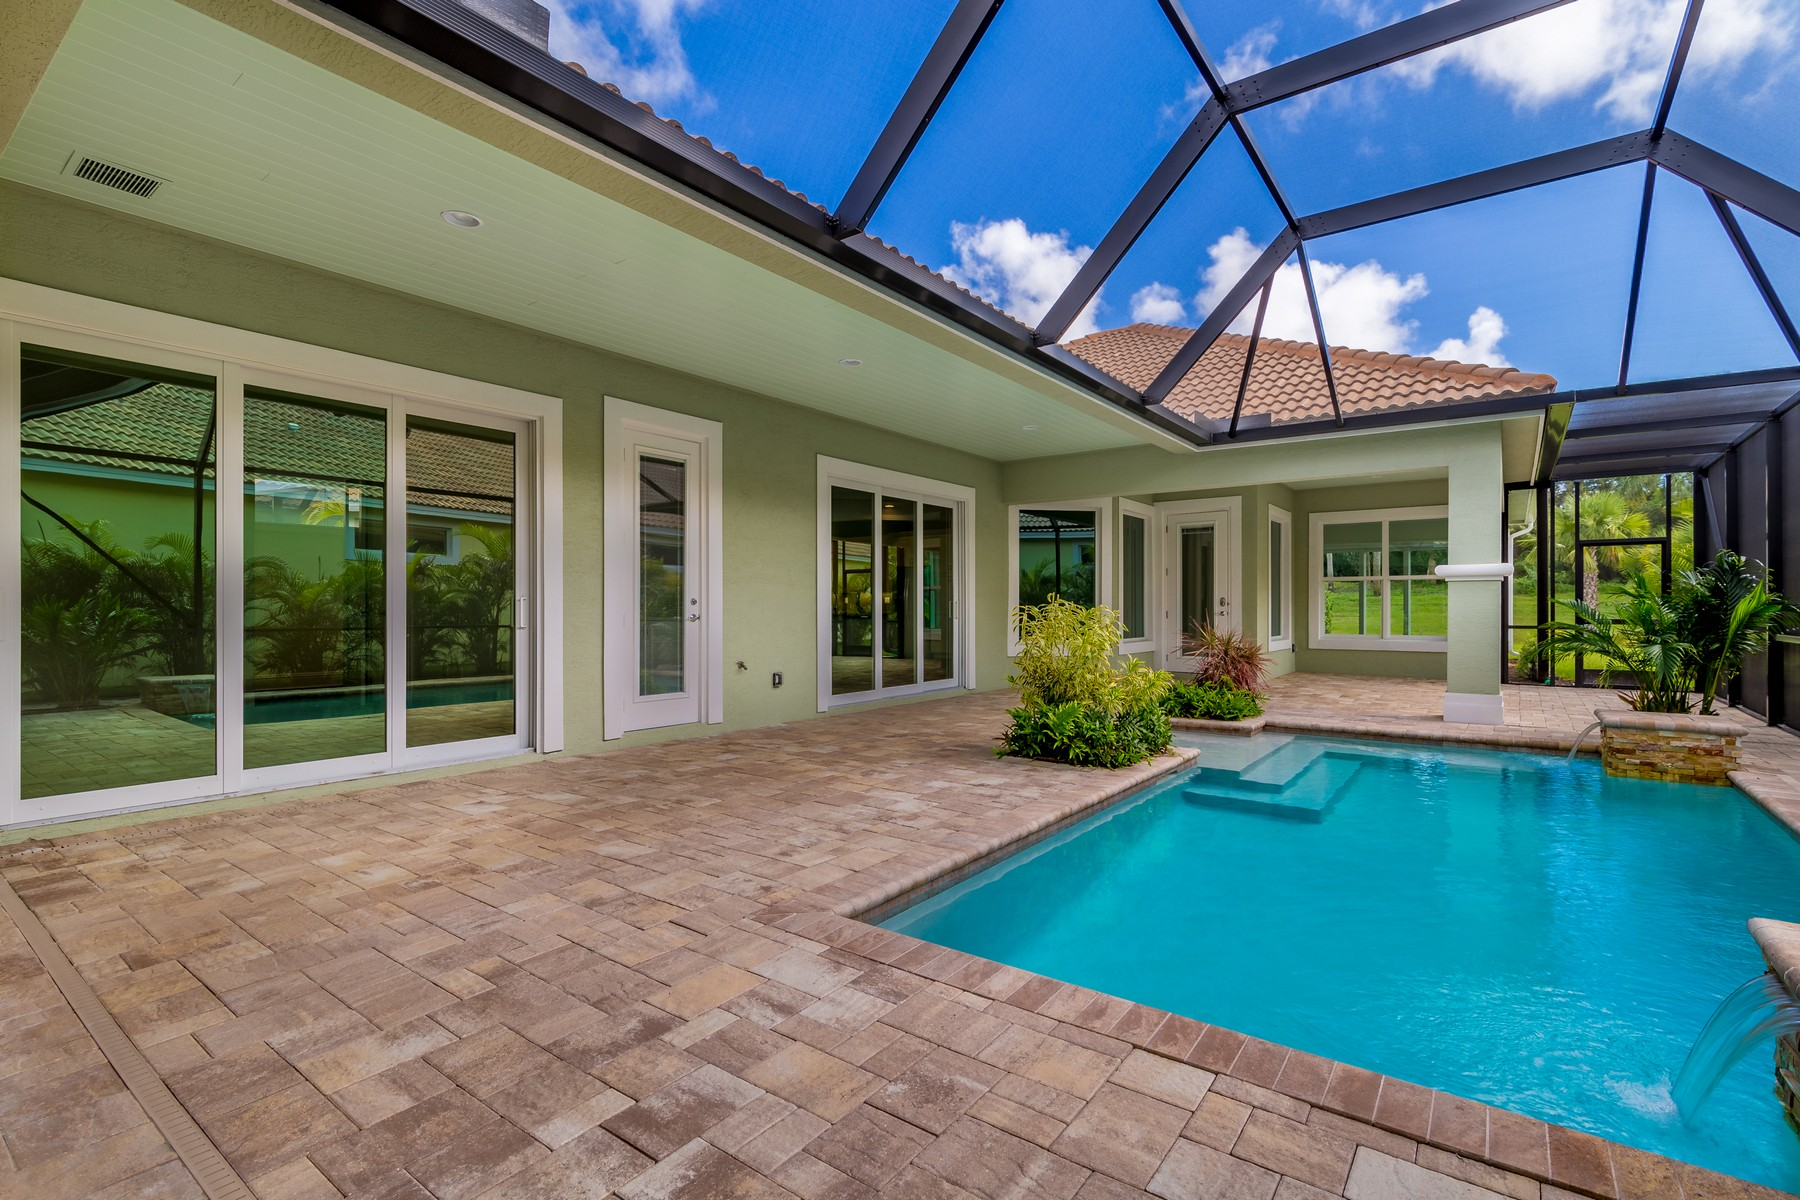 Single Family Home for Sale at Private Courtyard Pool Home 2135 Falls Circle Vero Beach, Florida 32963 United States